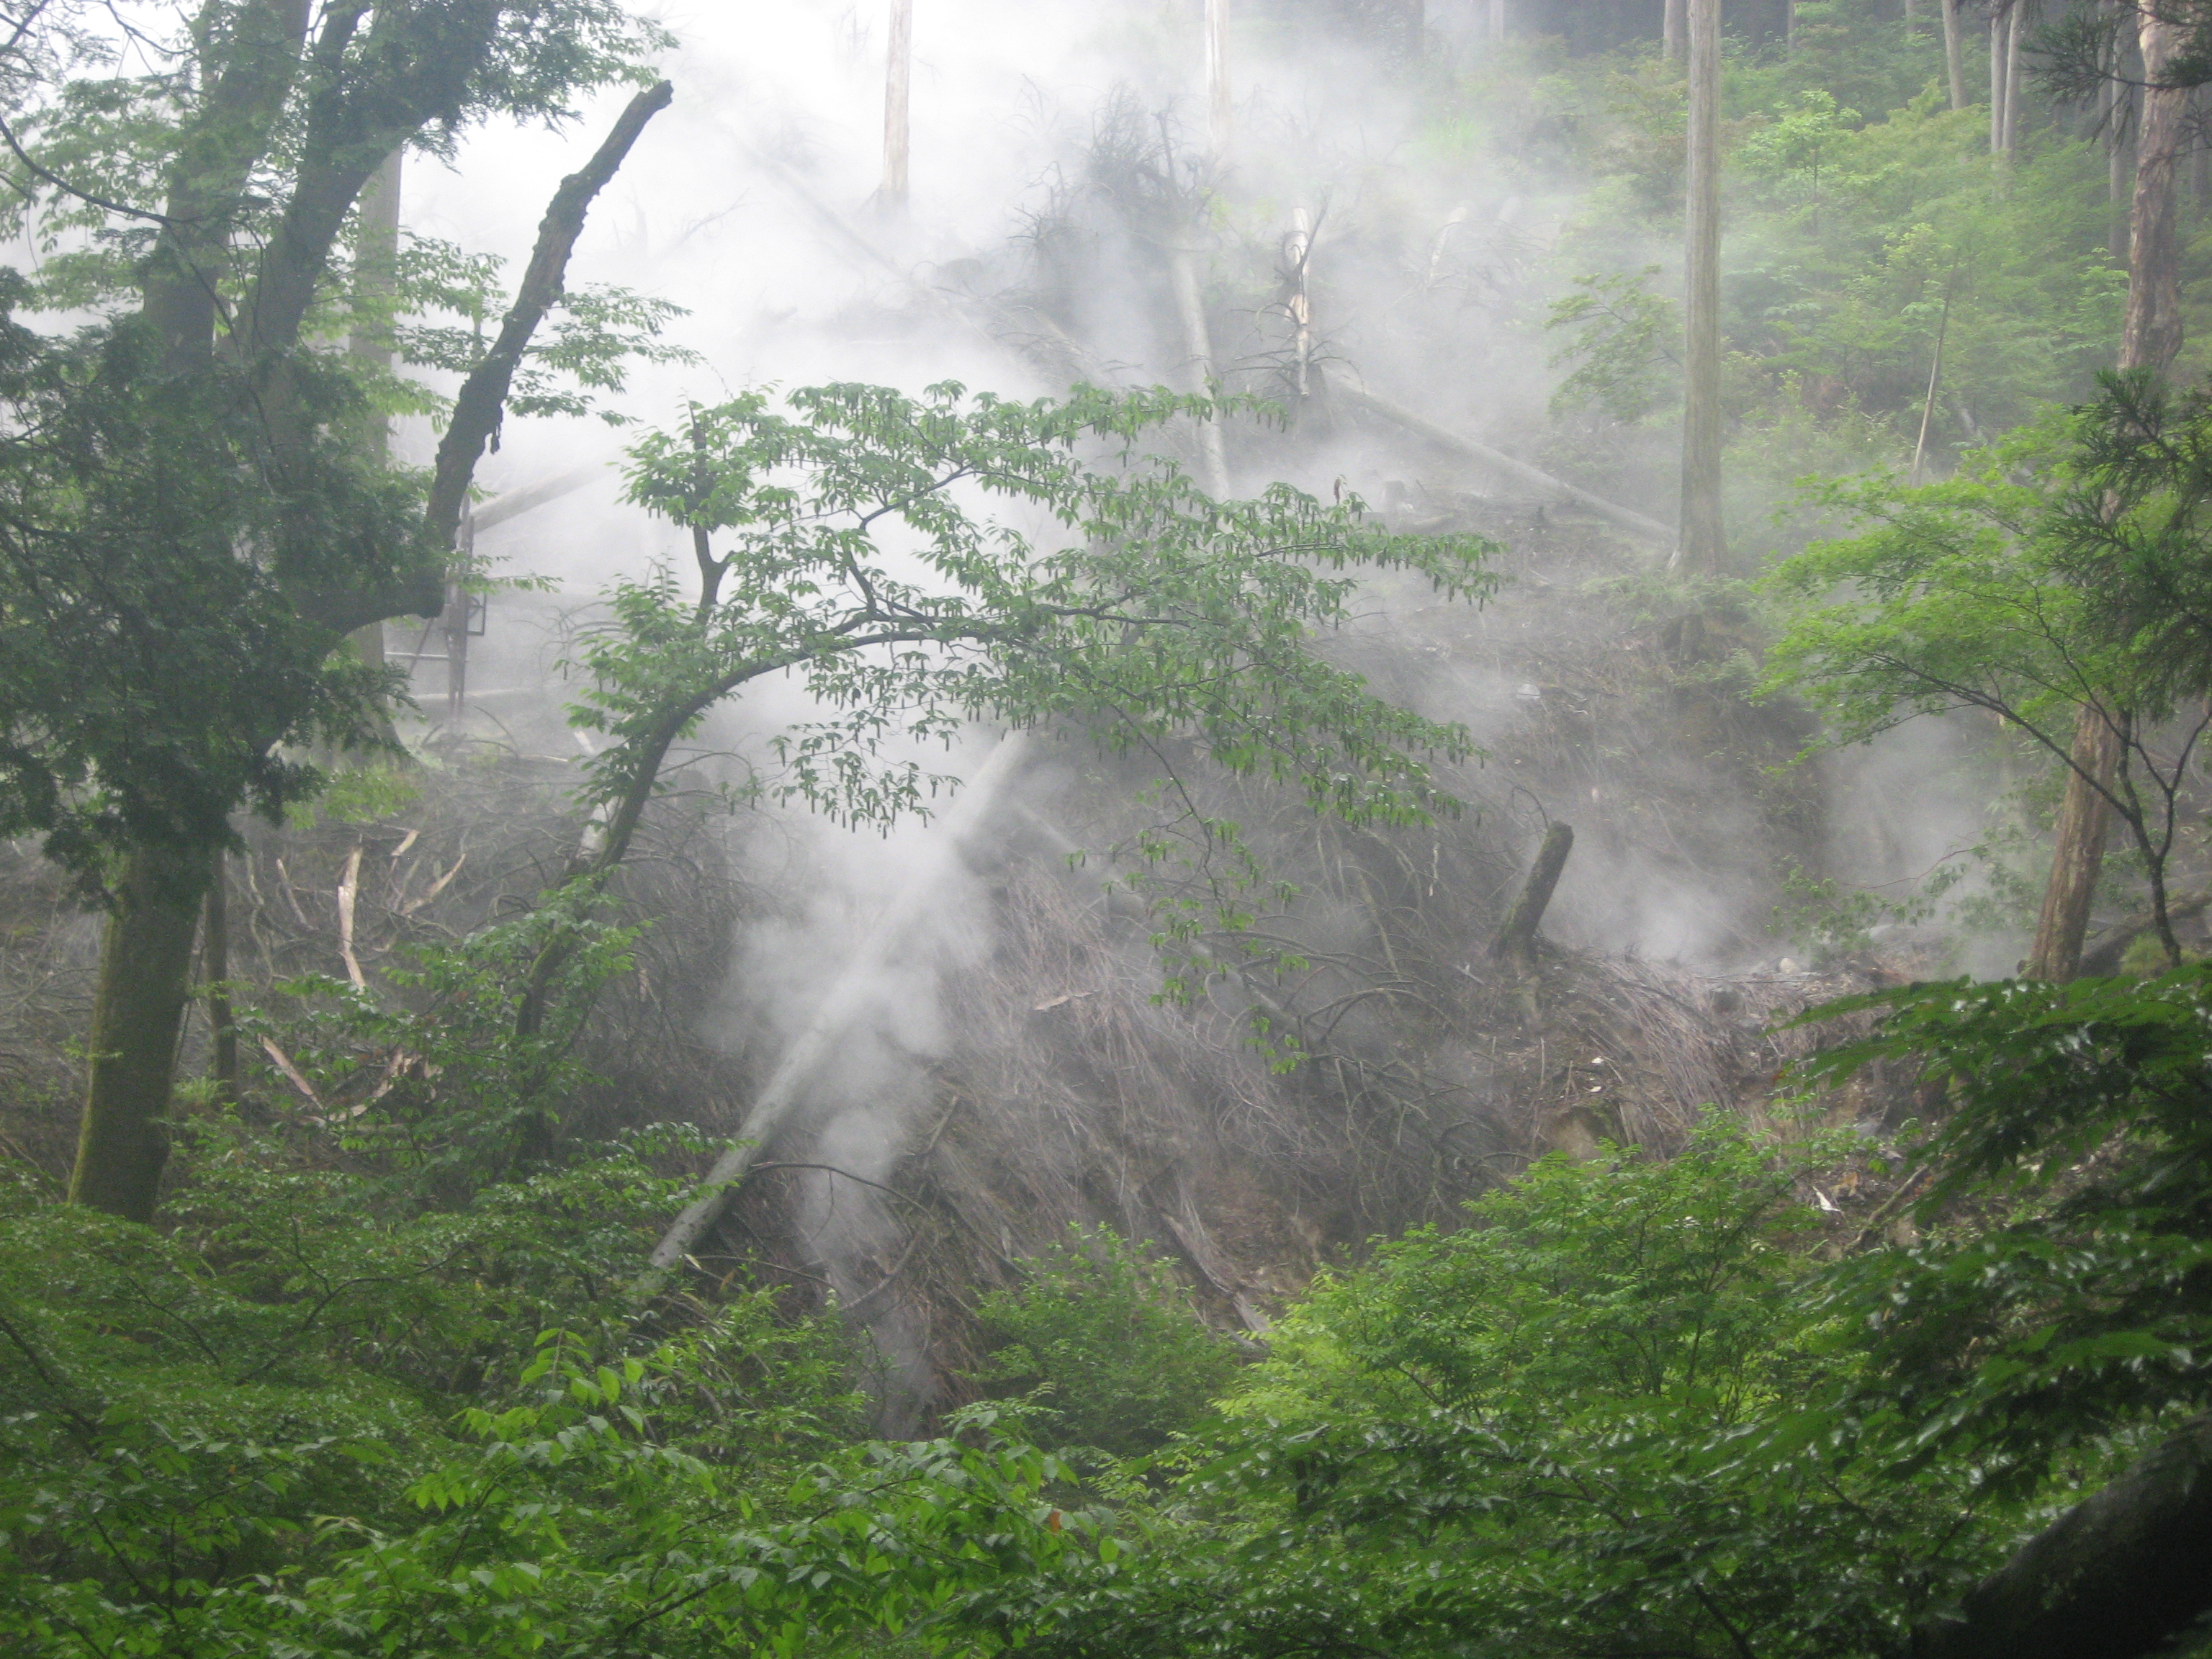 Around Mt. Fuji. Steam comes out of the ground everywhere.